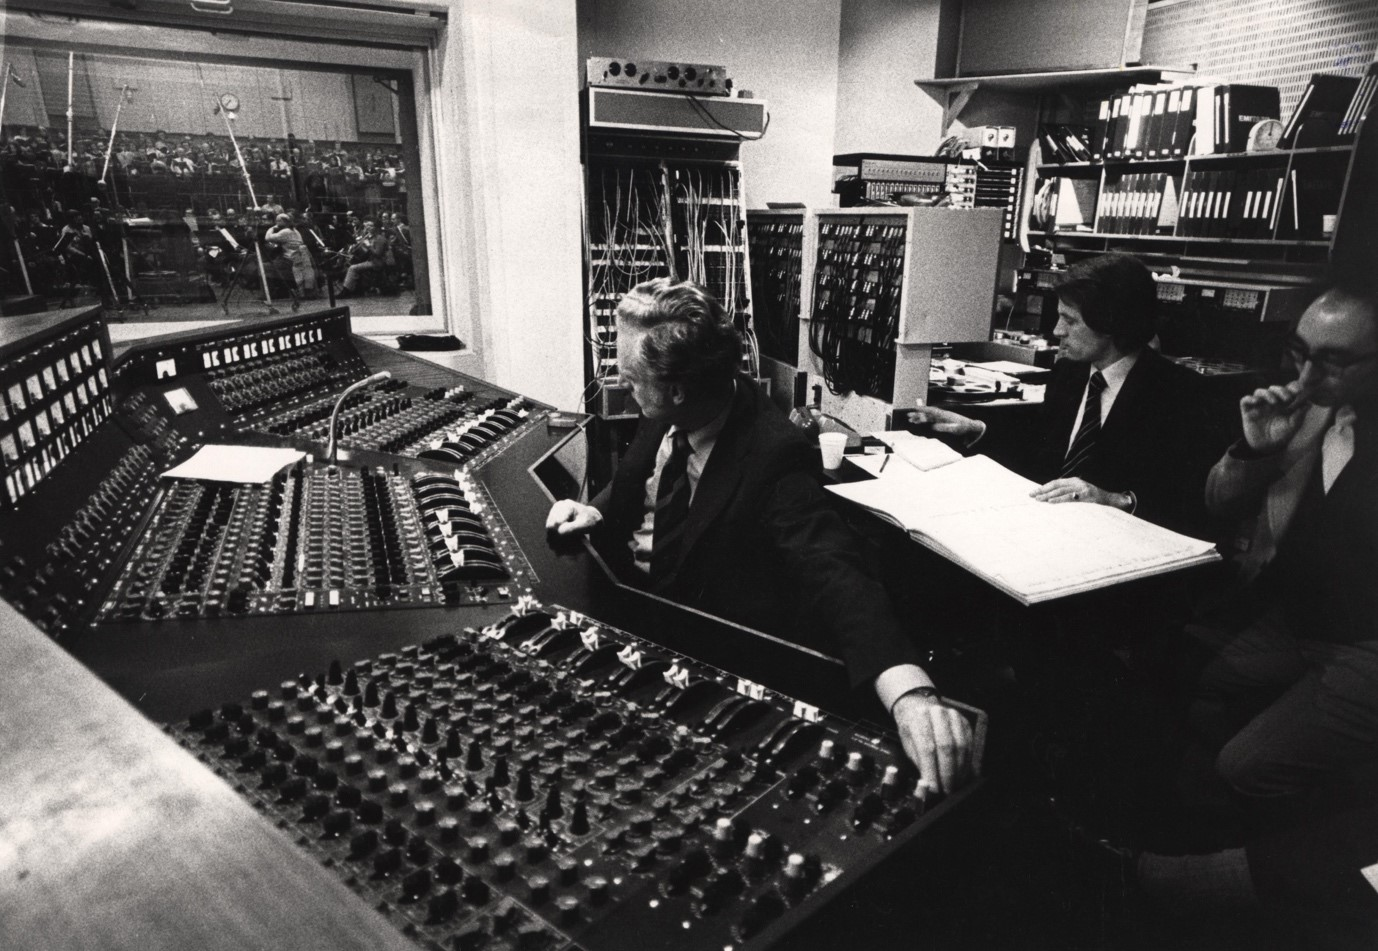 The cramped side-orientated conditions of Studio One control room were less than ideal for film scoring.